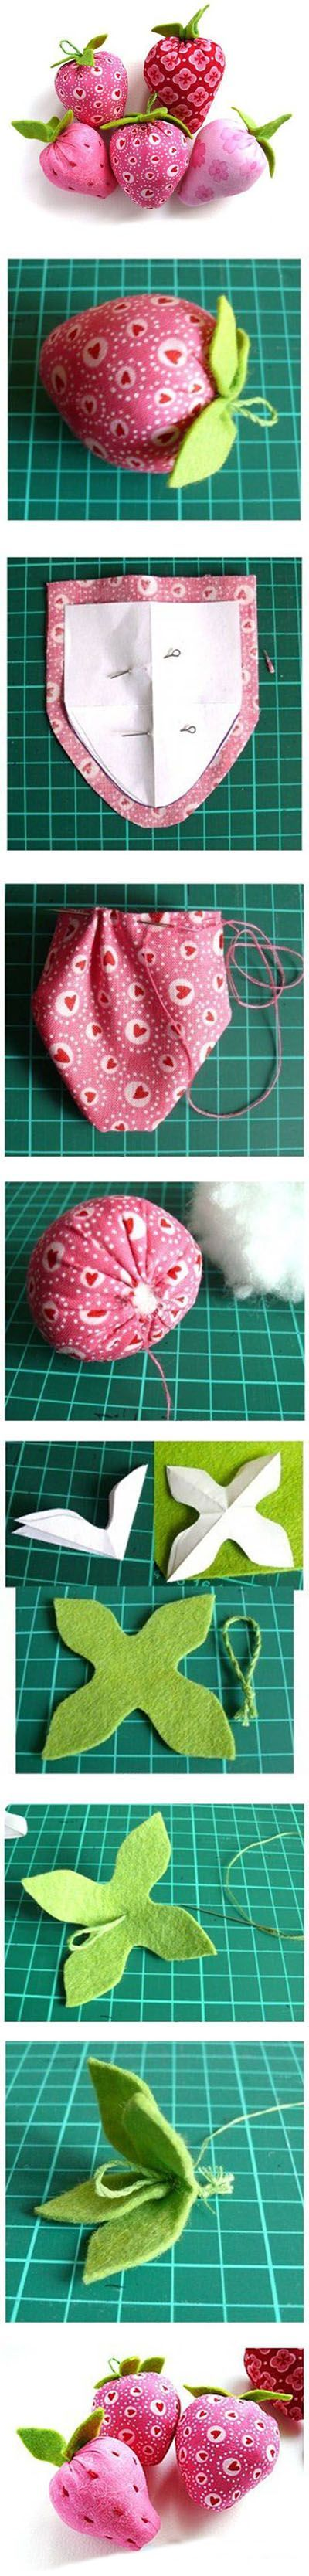 DIY these cute Strawberries from your favorite fabric and some felt.